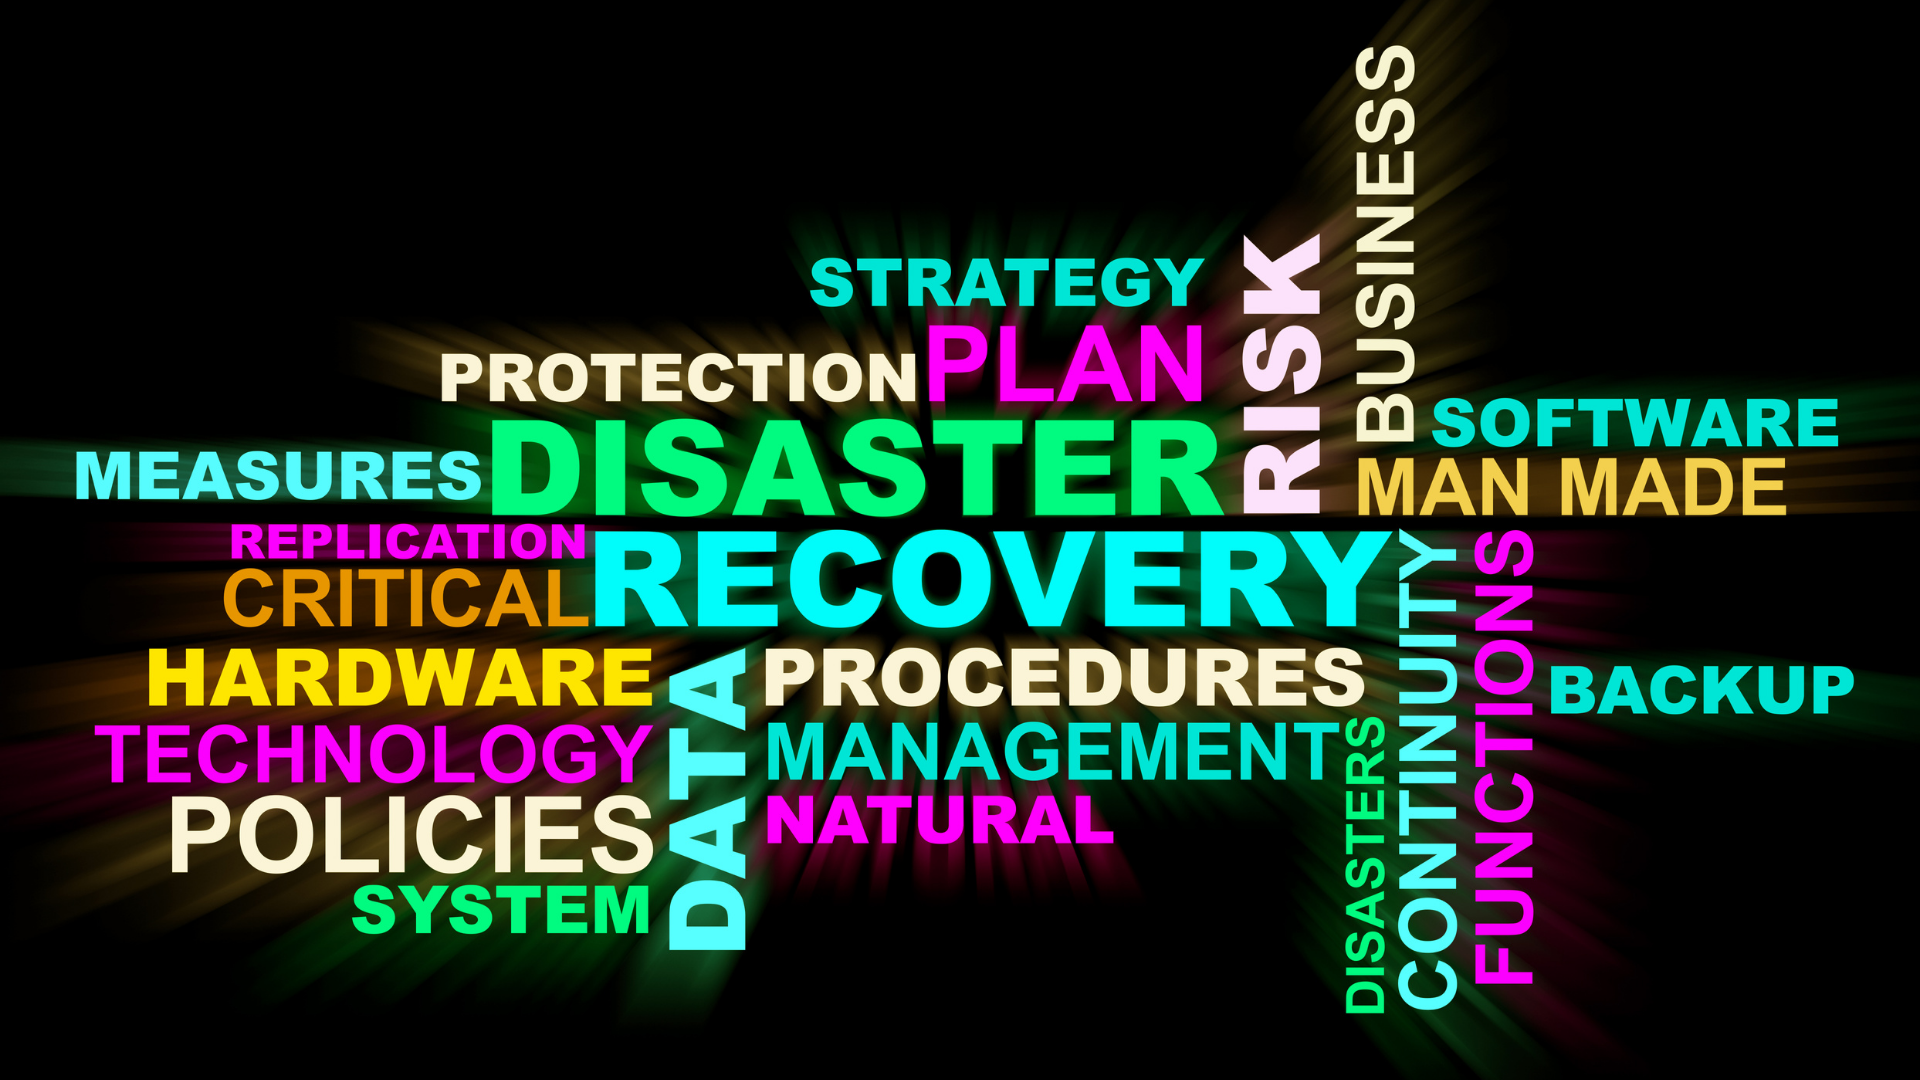 Disaster Recovery and Business Continuity: How to plan for the disruption